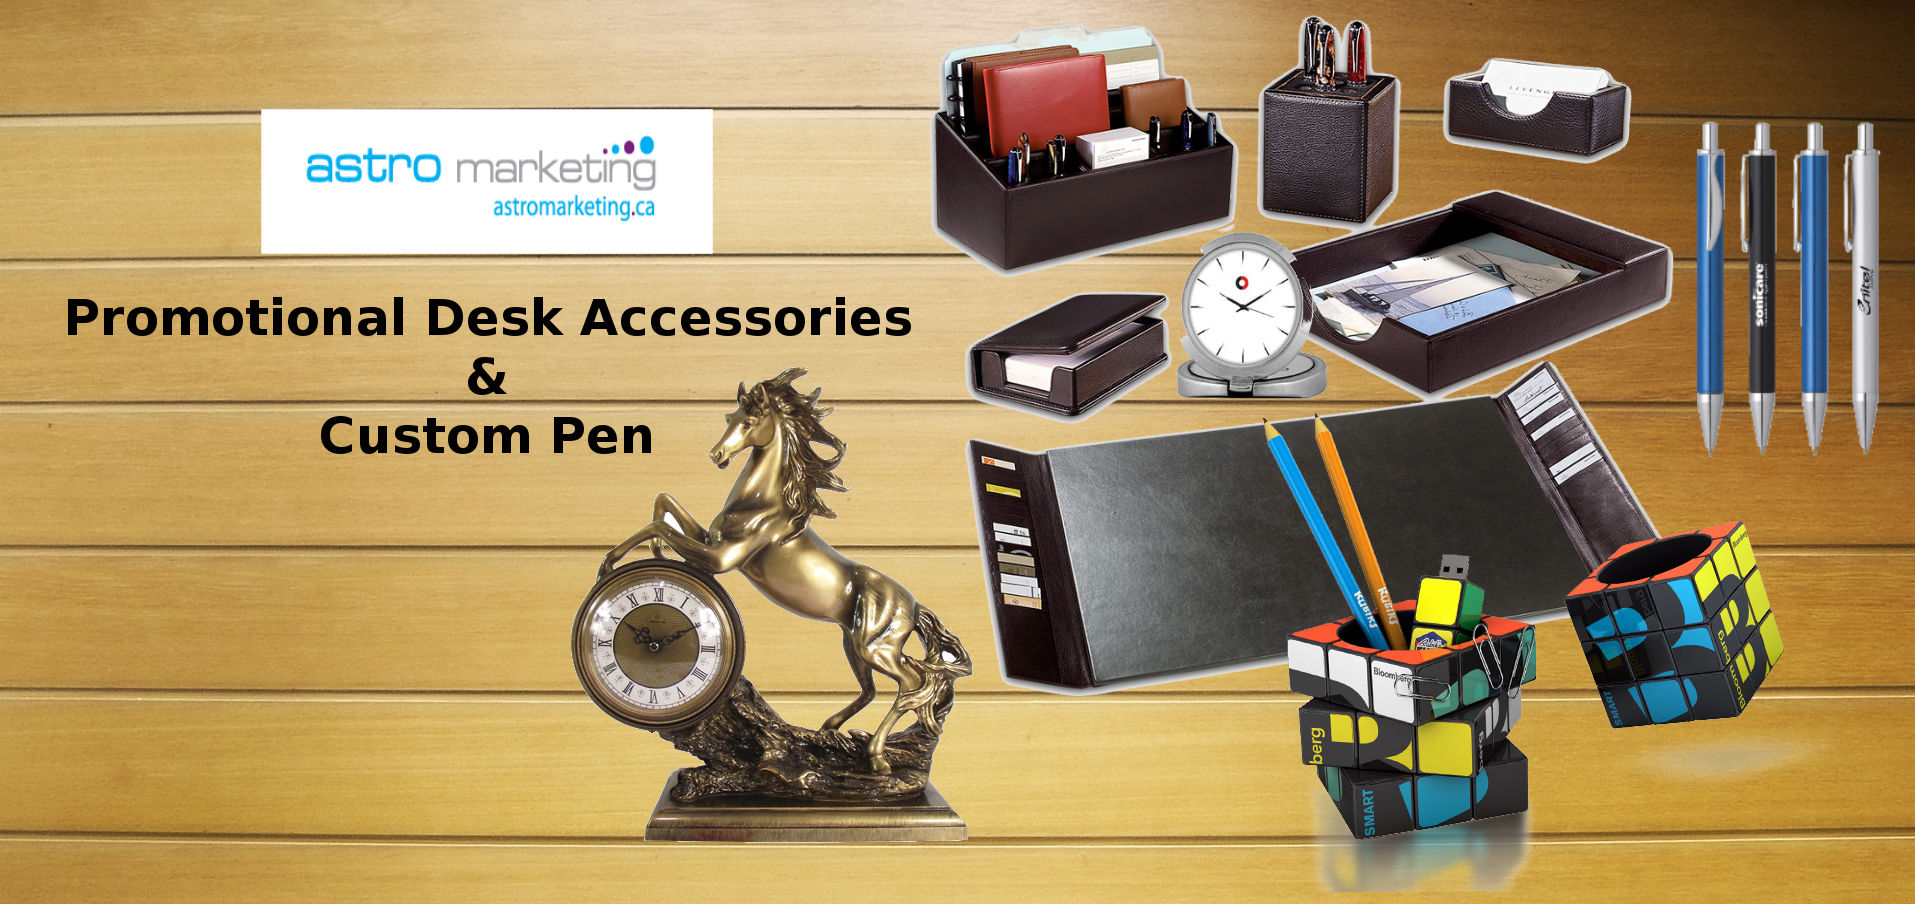 Promotional Desk Accessories  Astro Marketing